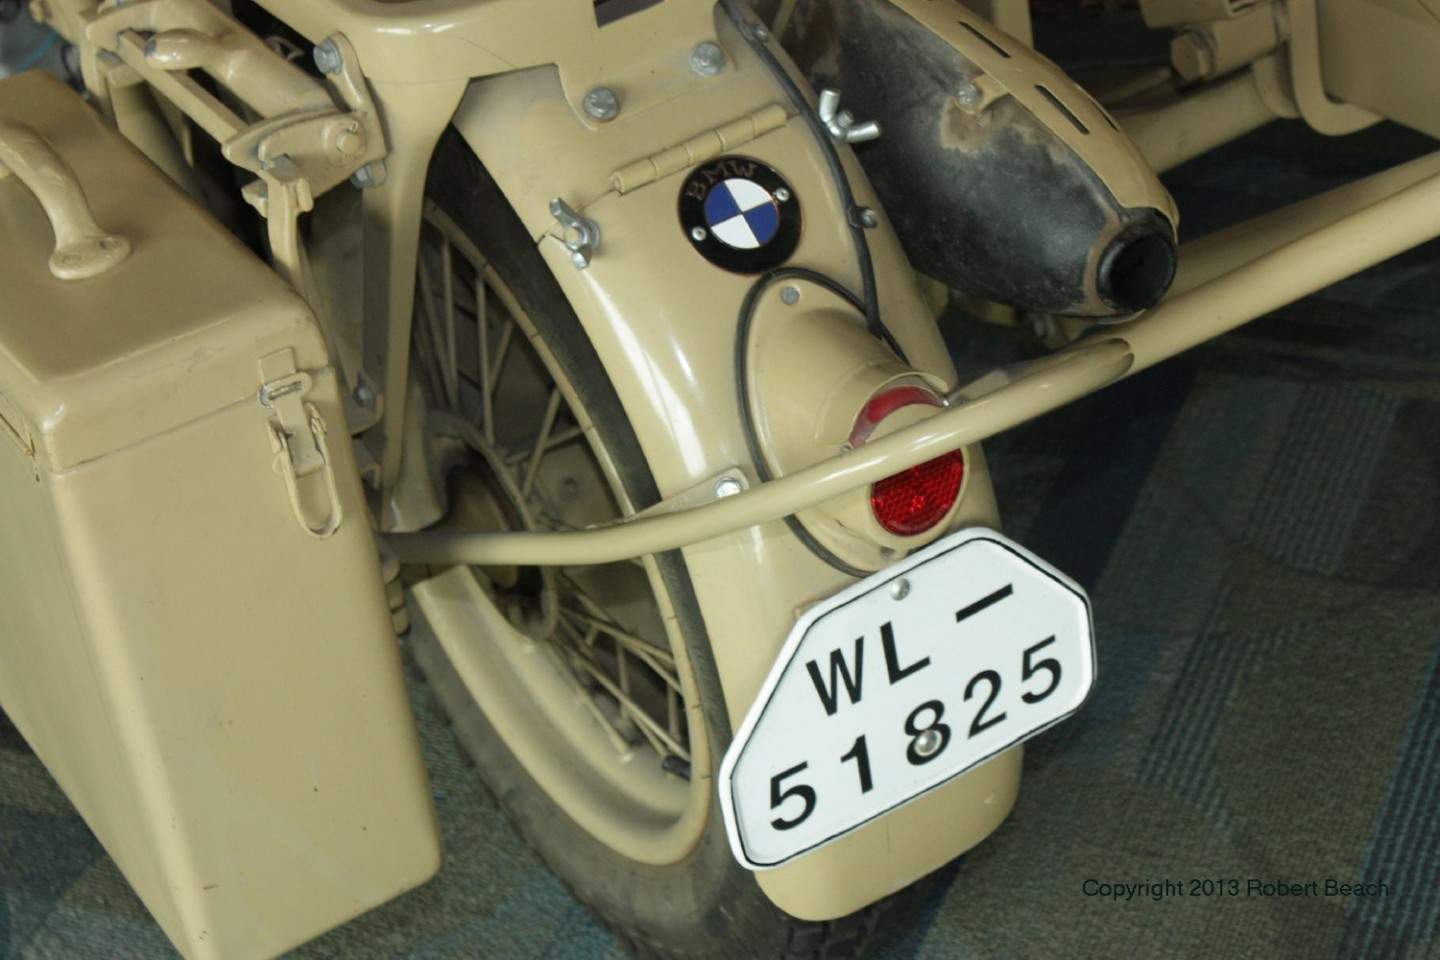 BMW_Mtrcycle_sidecar_cycle_fender rear view